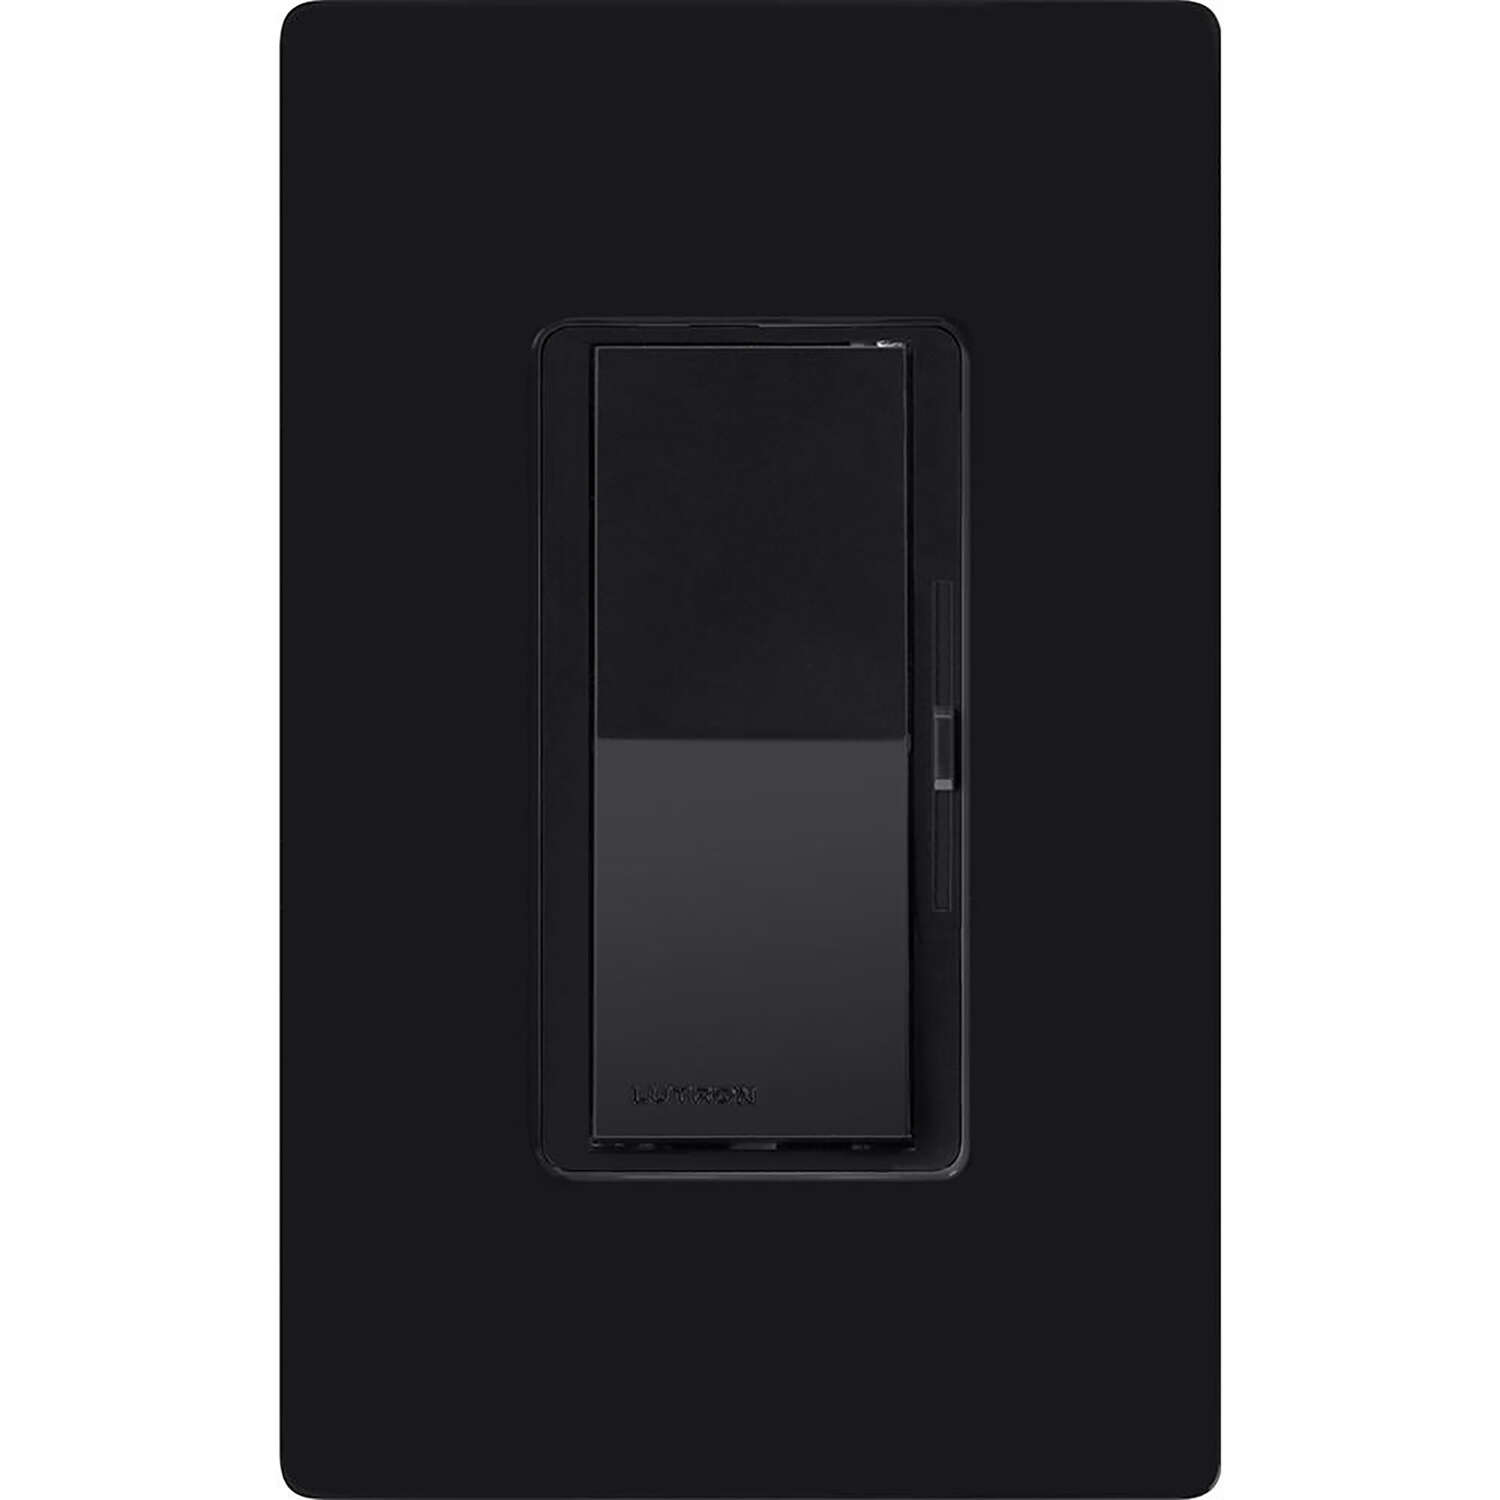 Lutron  Diva  Black  600 watt 3-Way  Dimmer Switch  1 pk